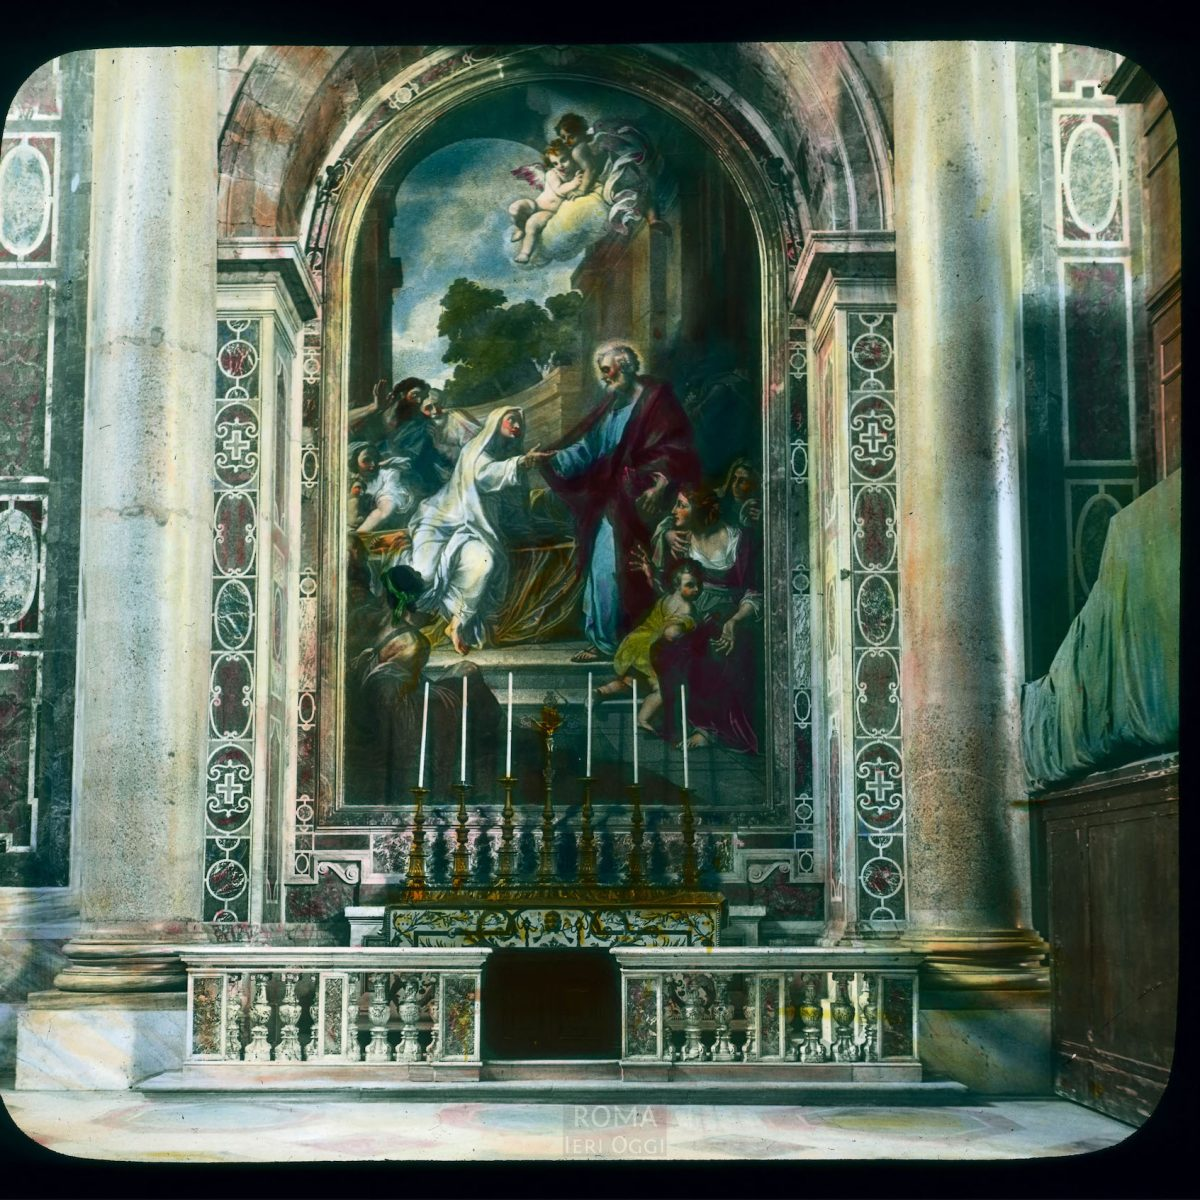 Vatican City. St. Peter's Basilica: interior, Tabitha Altar, with mosaic after Costanzi View in tinted lantern slide, ca. 1919-1938. The basilica dates from ca. 1506-1626.